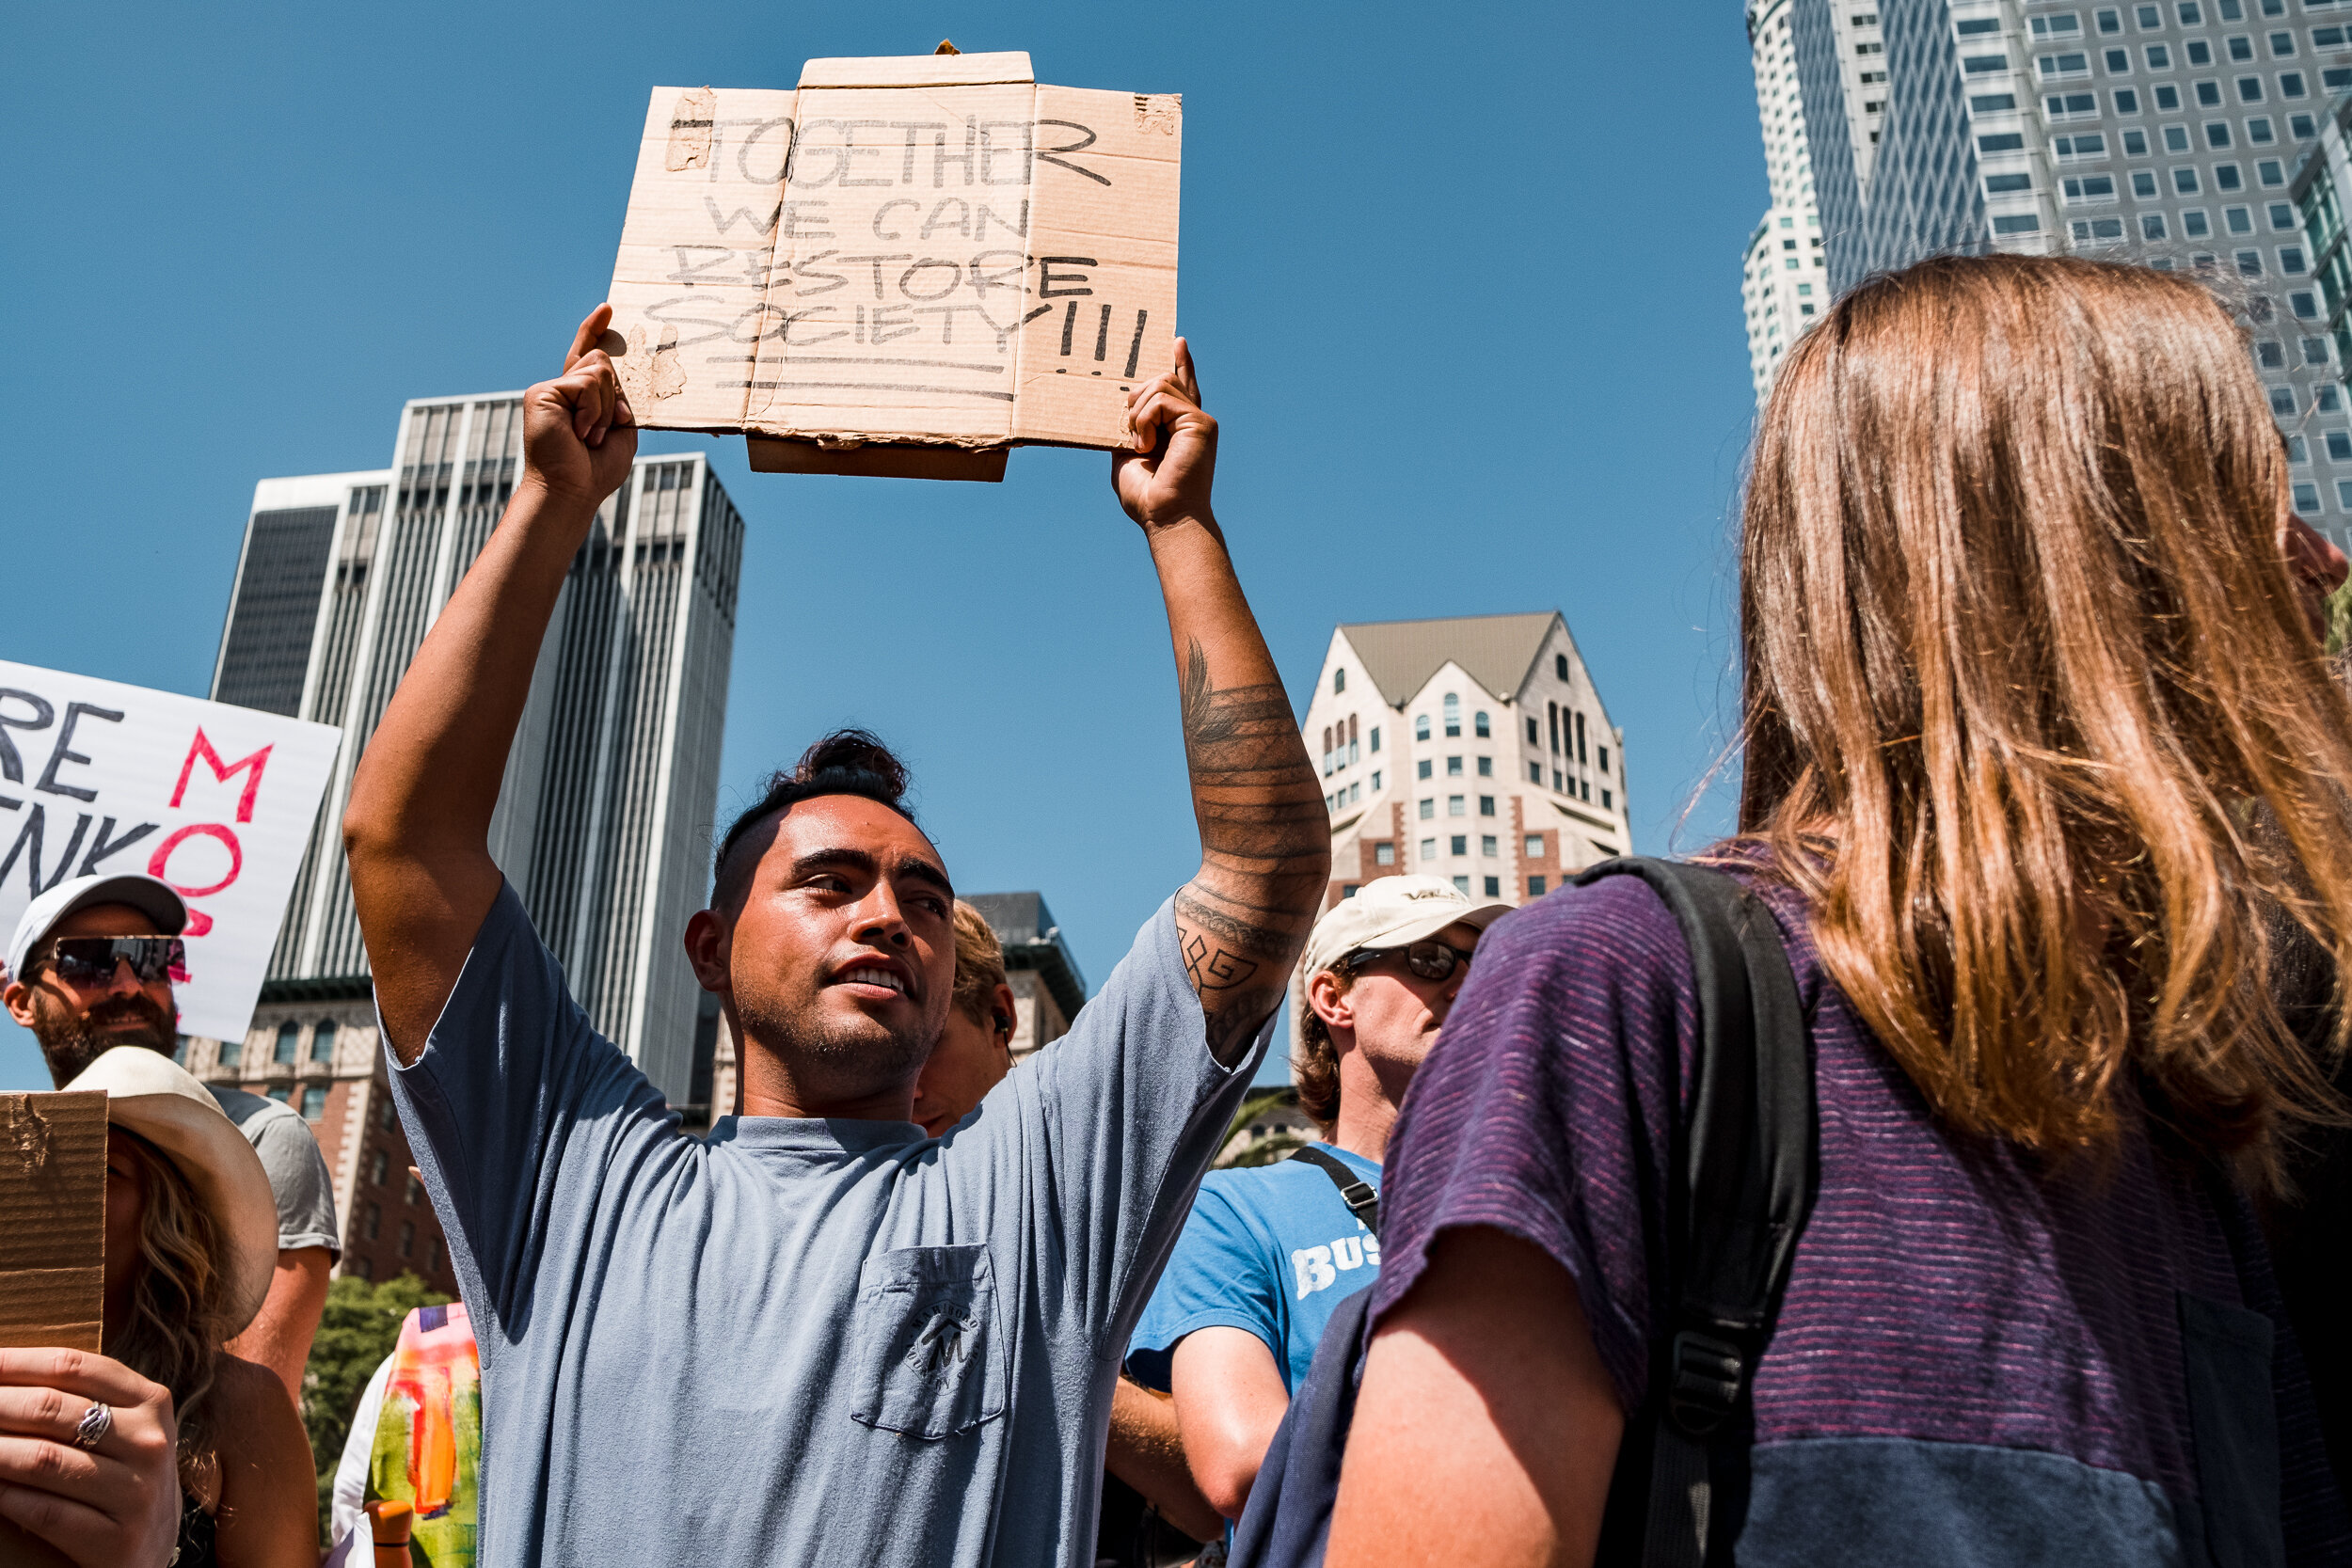 Nicholas Slobin/ Courier Devyn Reyes of Inglewood, Calif. holds a sign at the Global Climate Strike in Downtown Los Angeles on Friday, September 20, 2019.